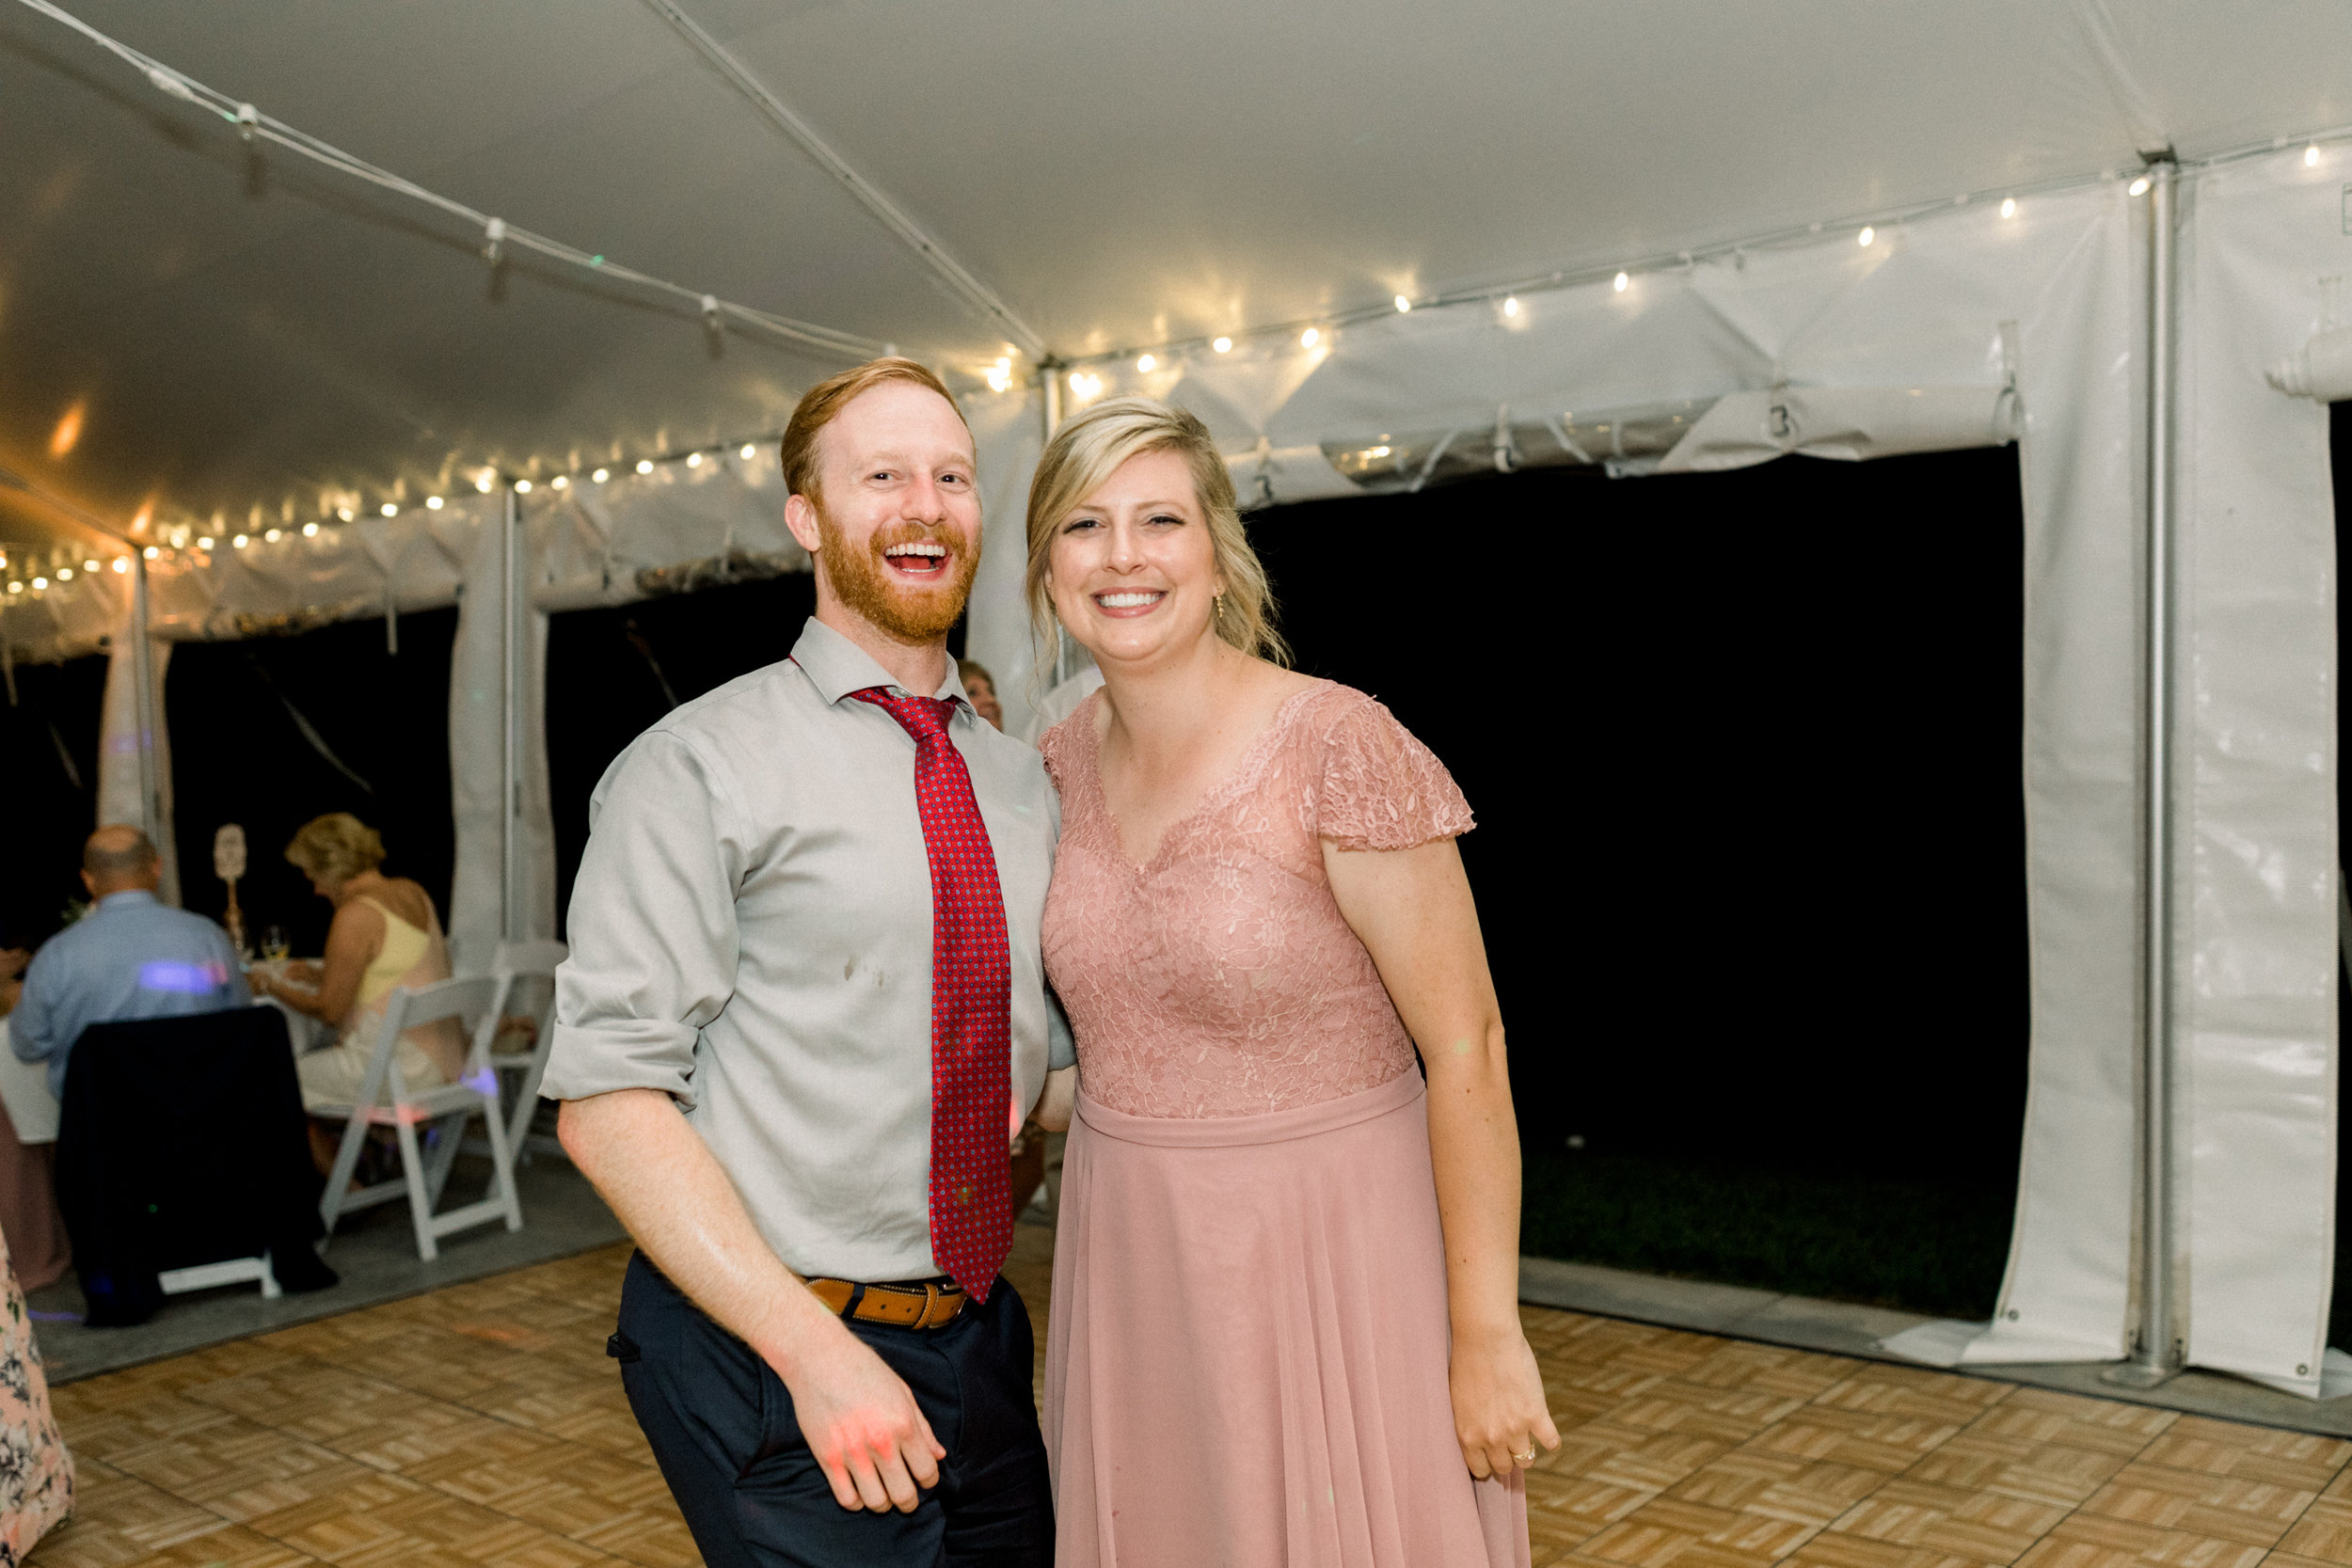 Molly + Dan wedding 6-7-19 (909 of 916).jpg